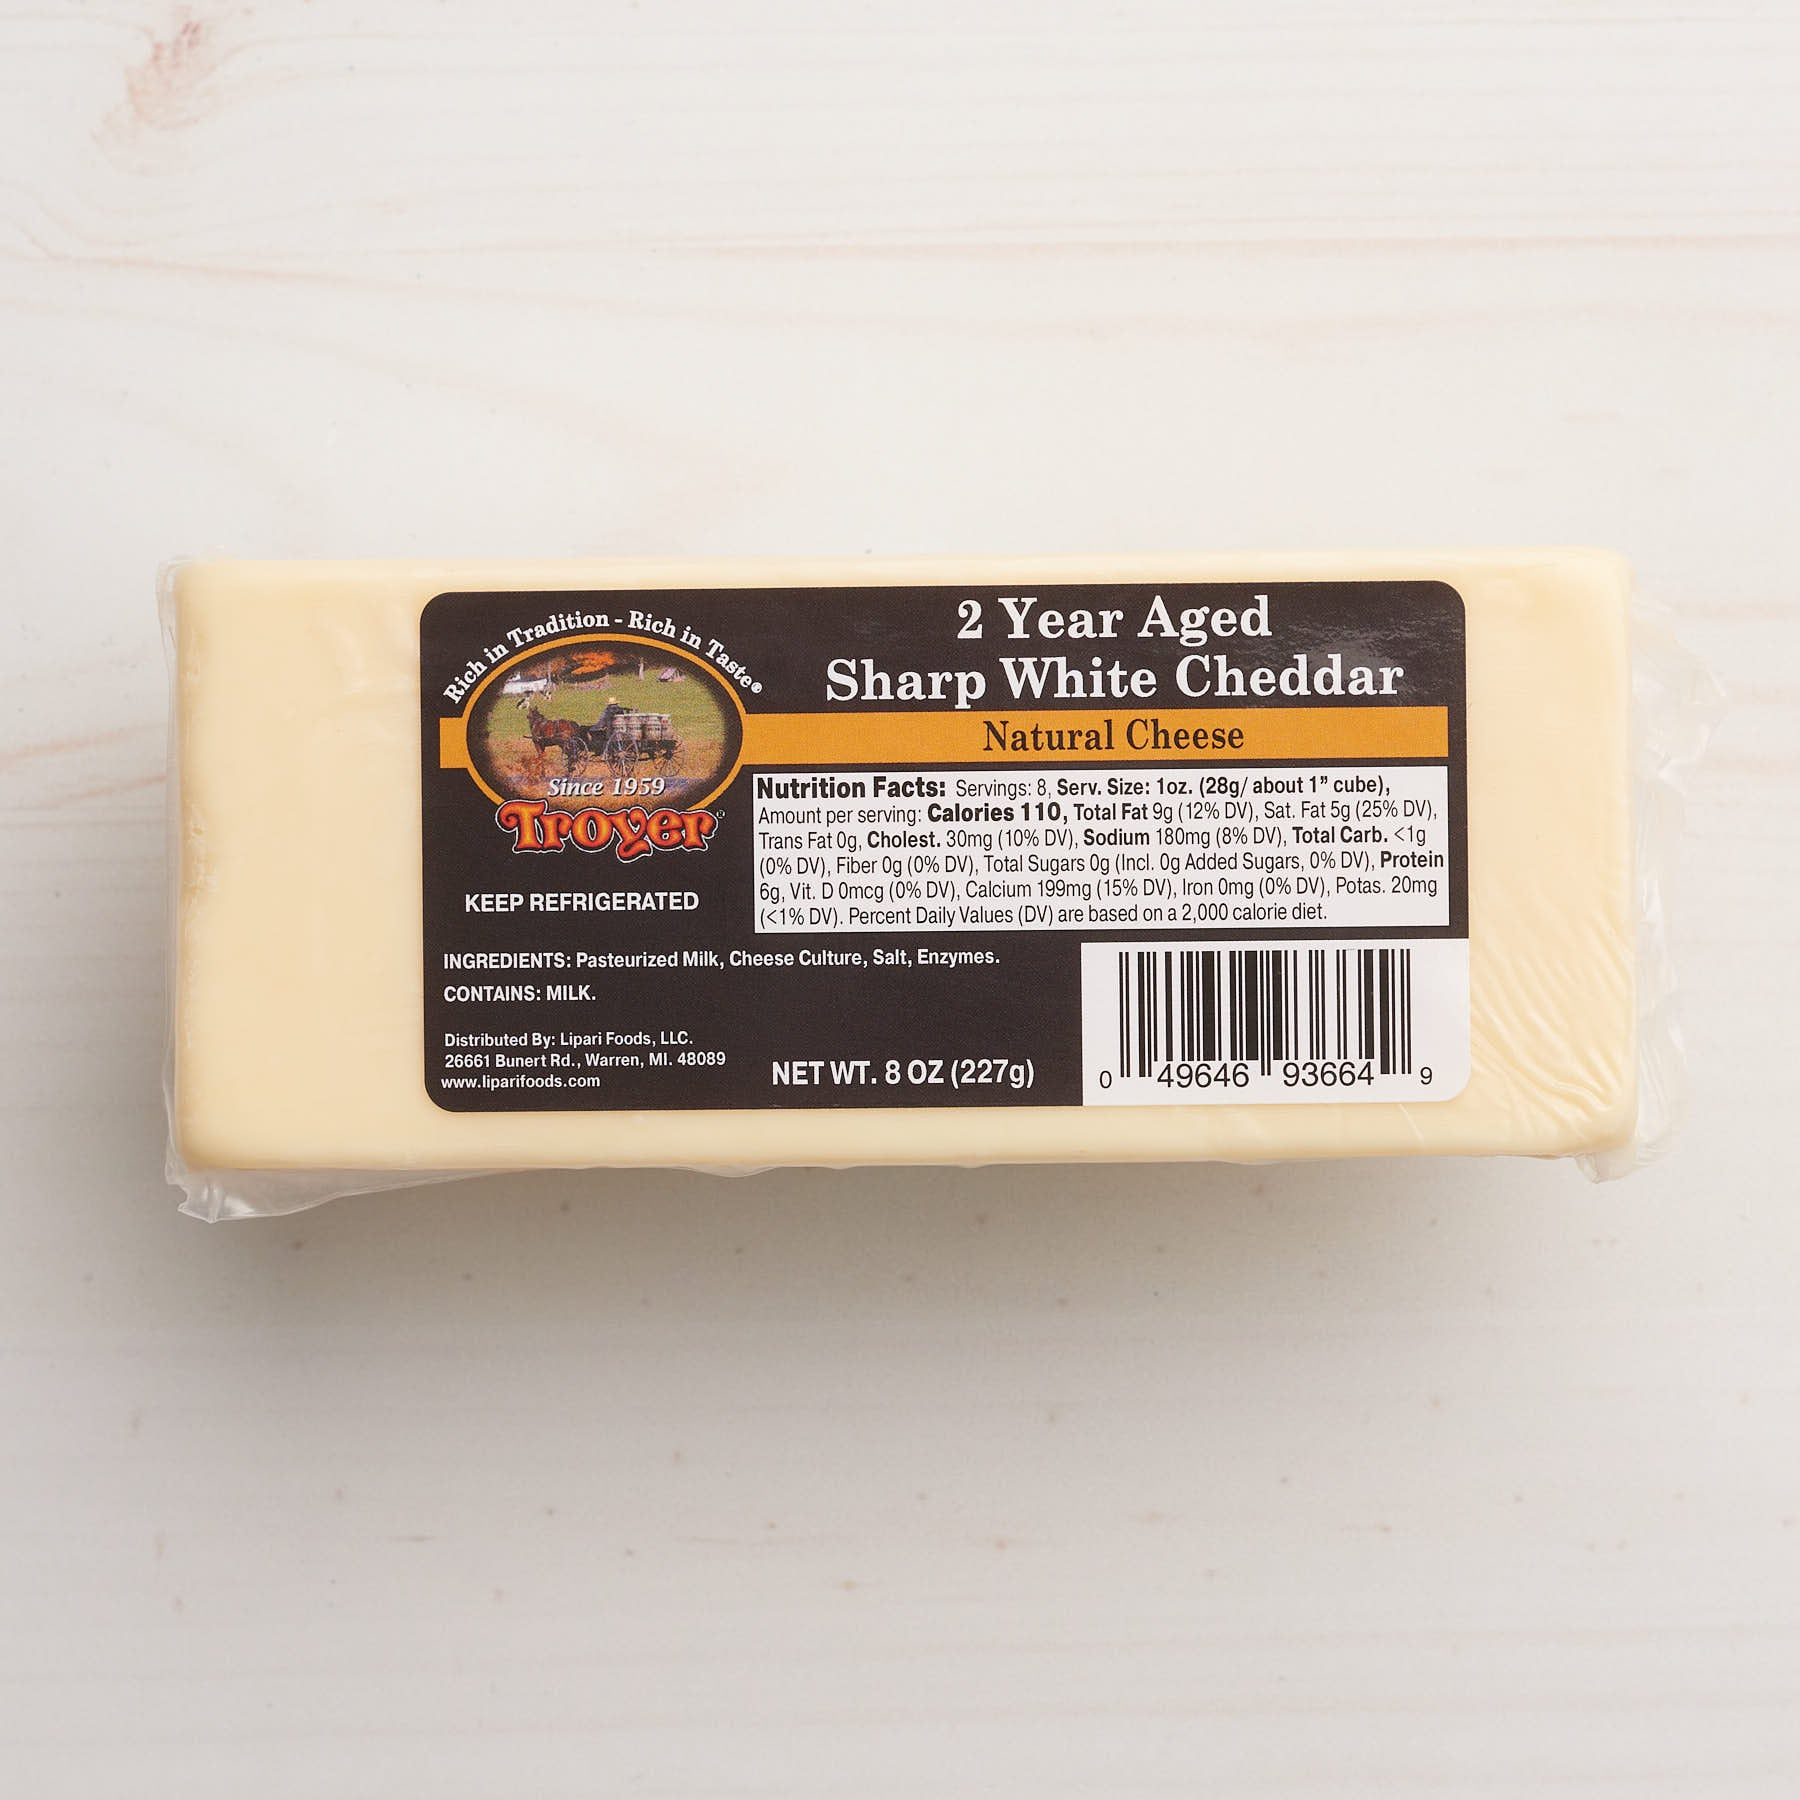 Image of Troyer 2 Year Aged Sharp White Cheese.